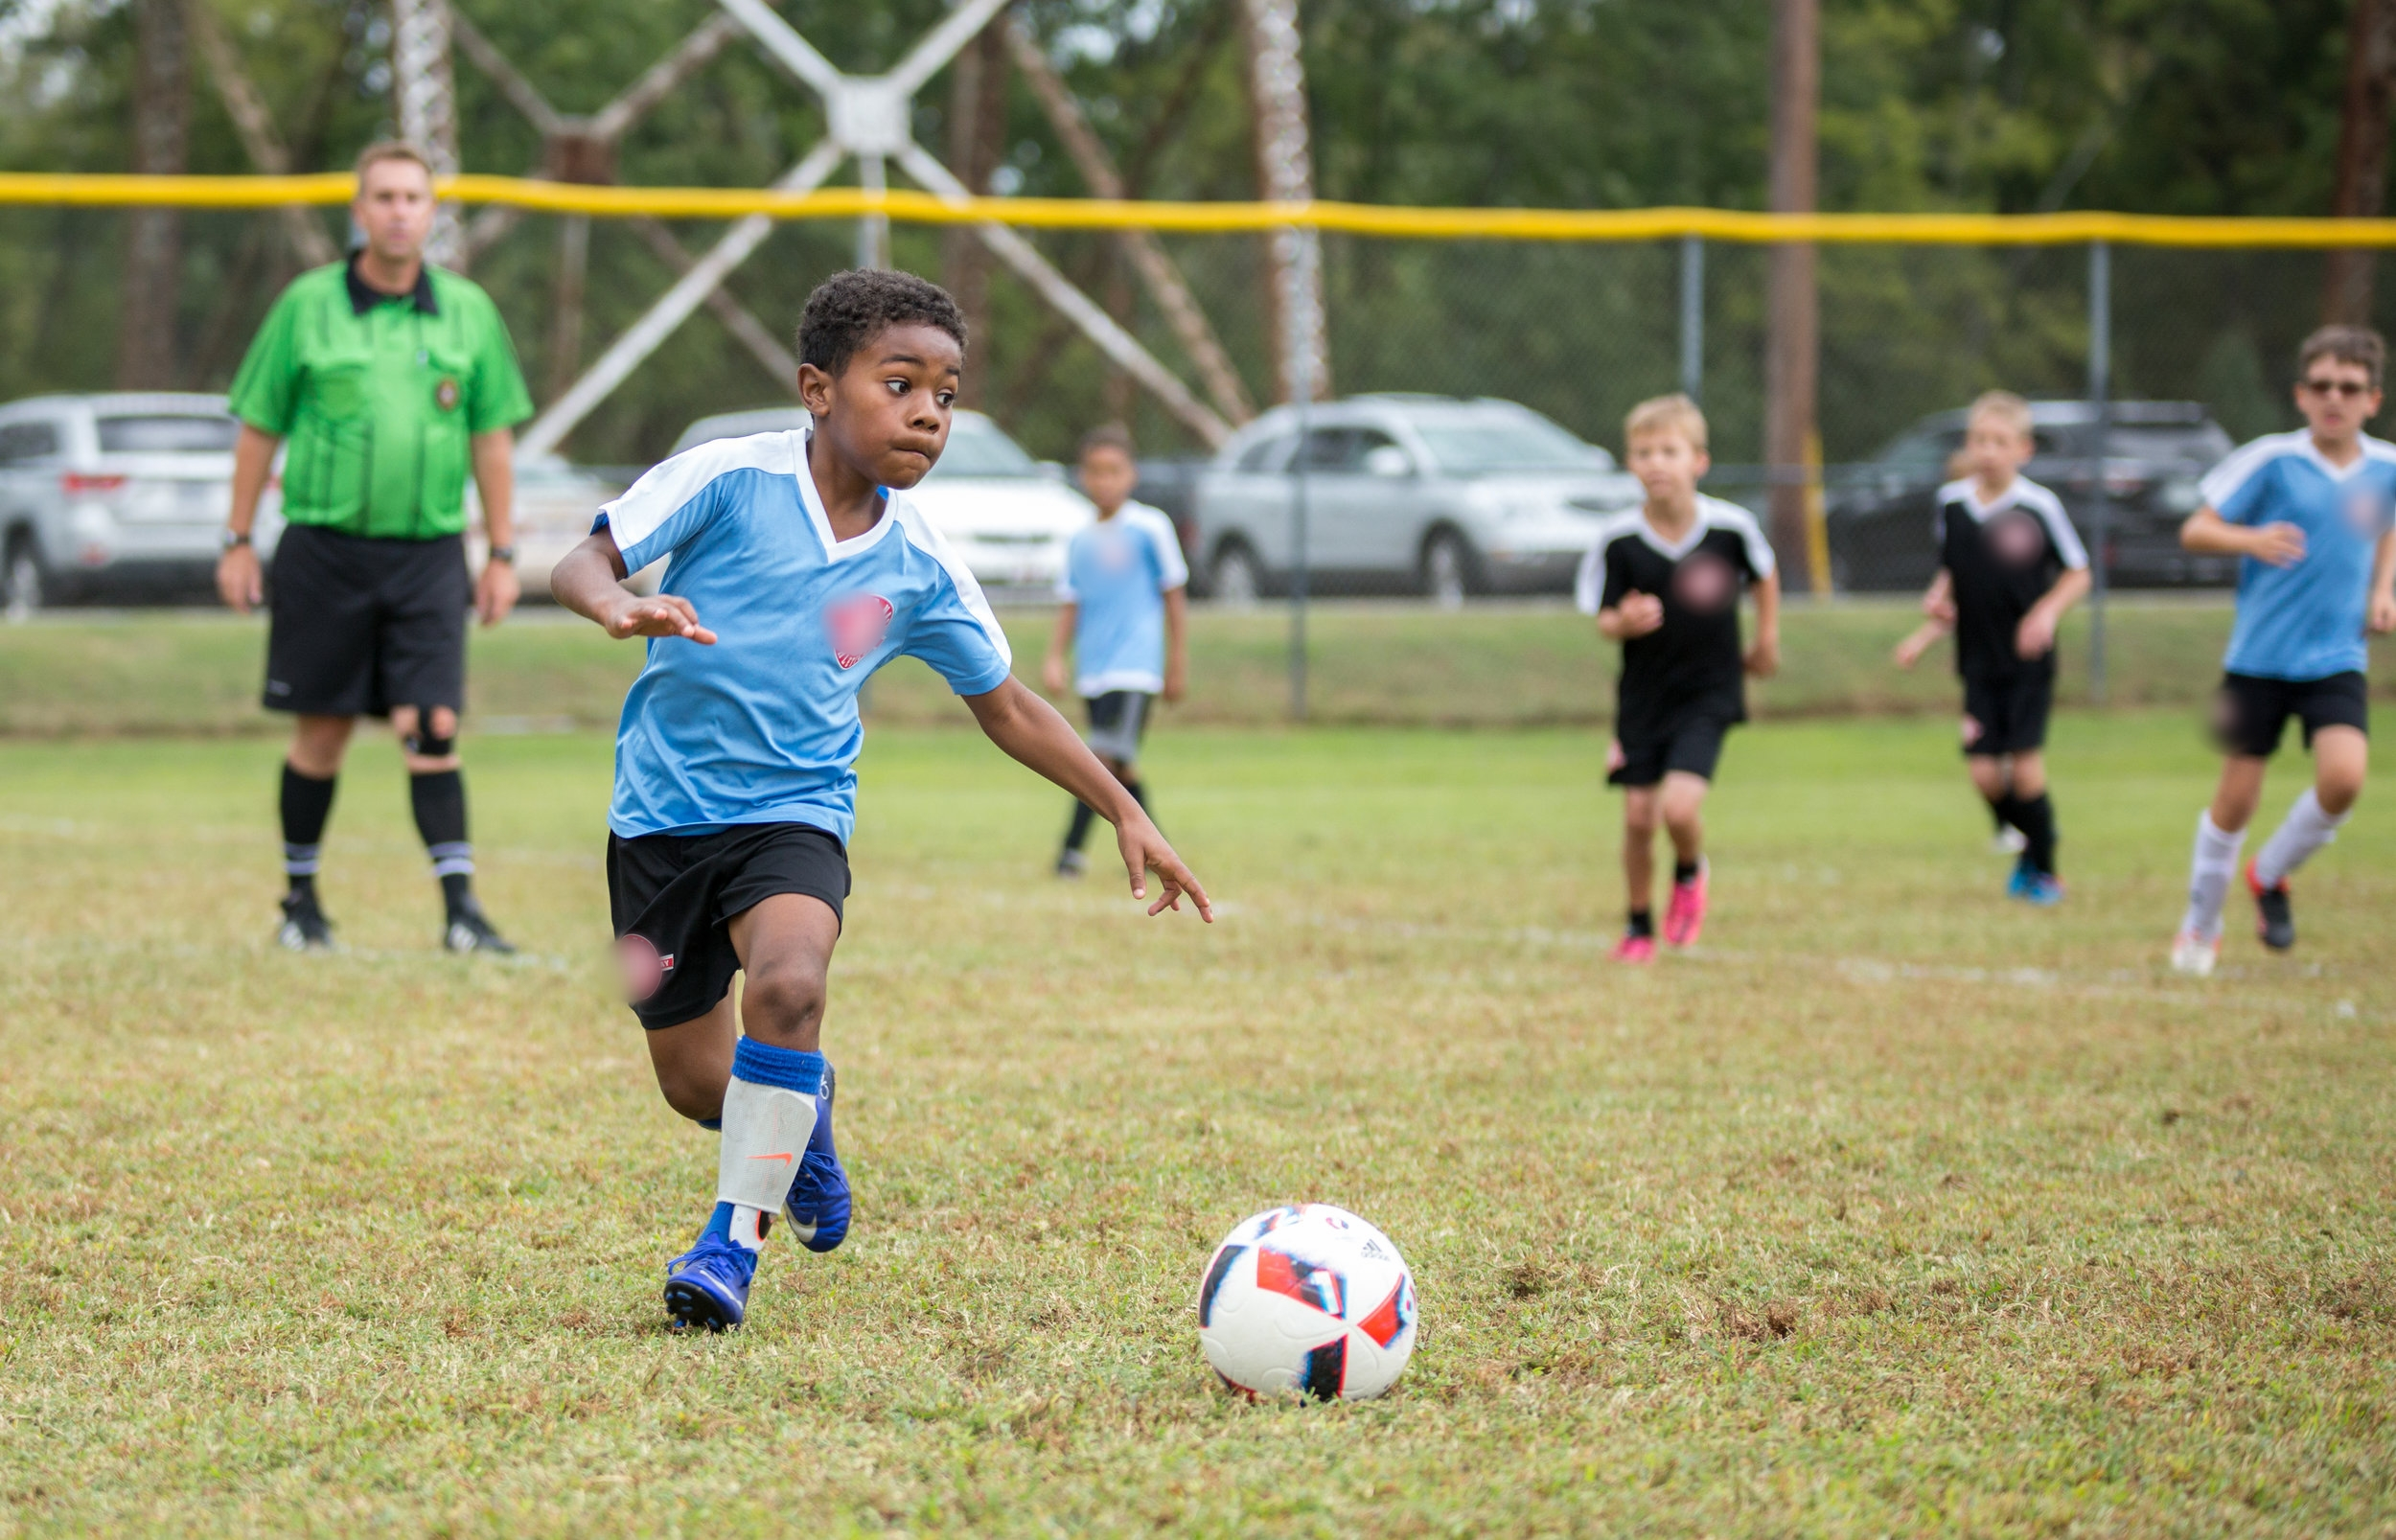 Vision - Our vision is to foster an environment of creative, exciting soccer encounters; whether at the local recreation league, supporting the local high school team or watching the highest level of the game. Learn More